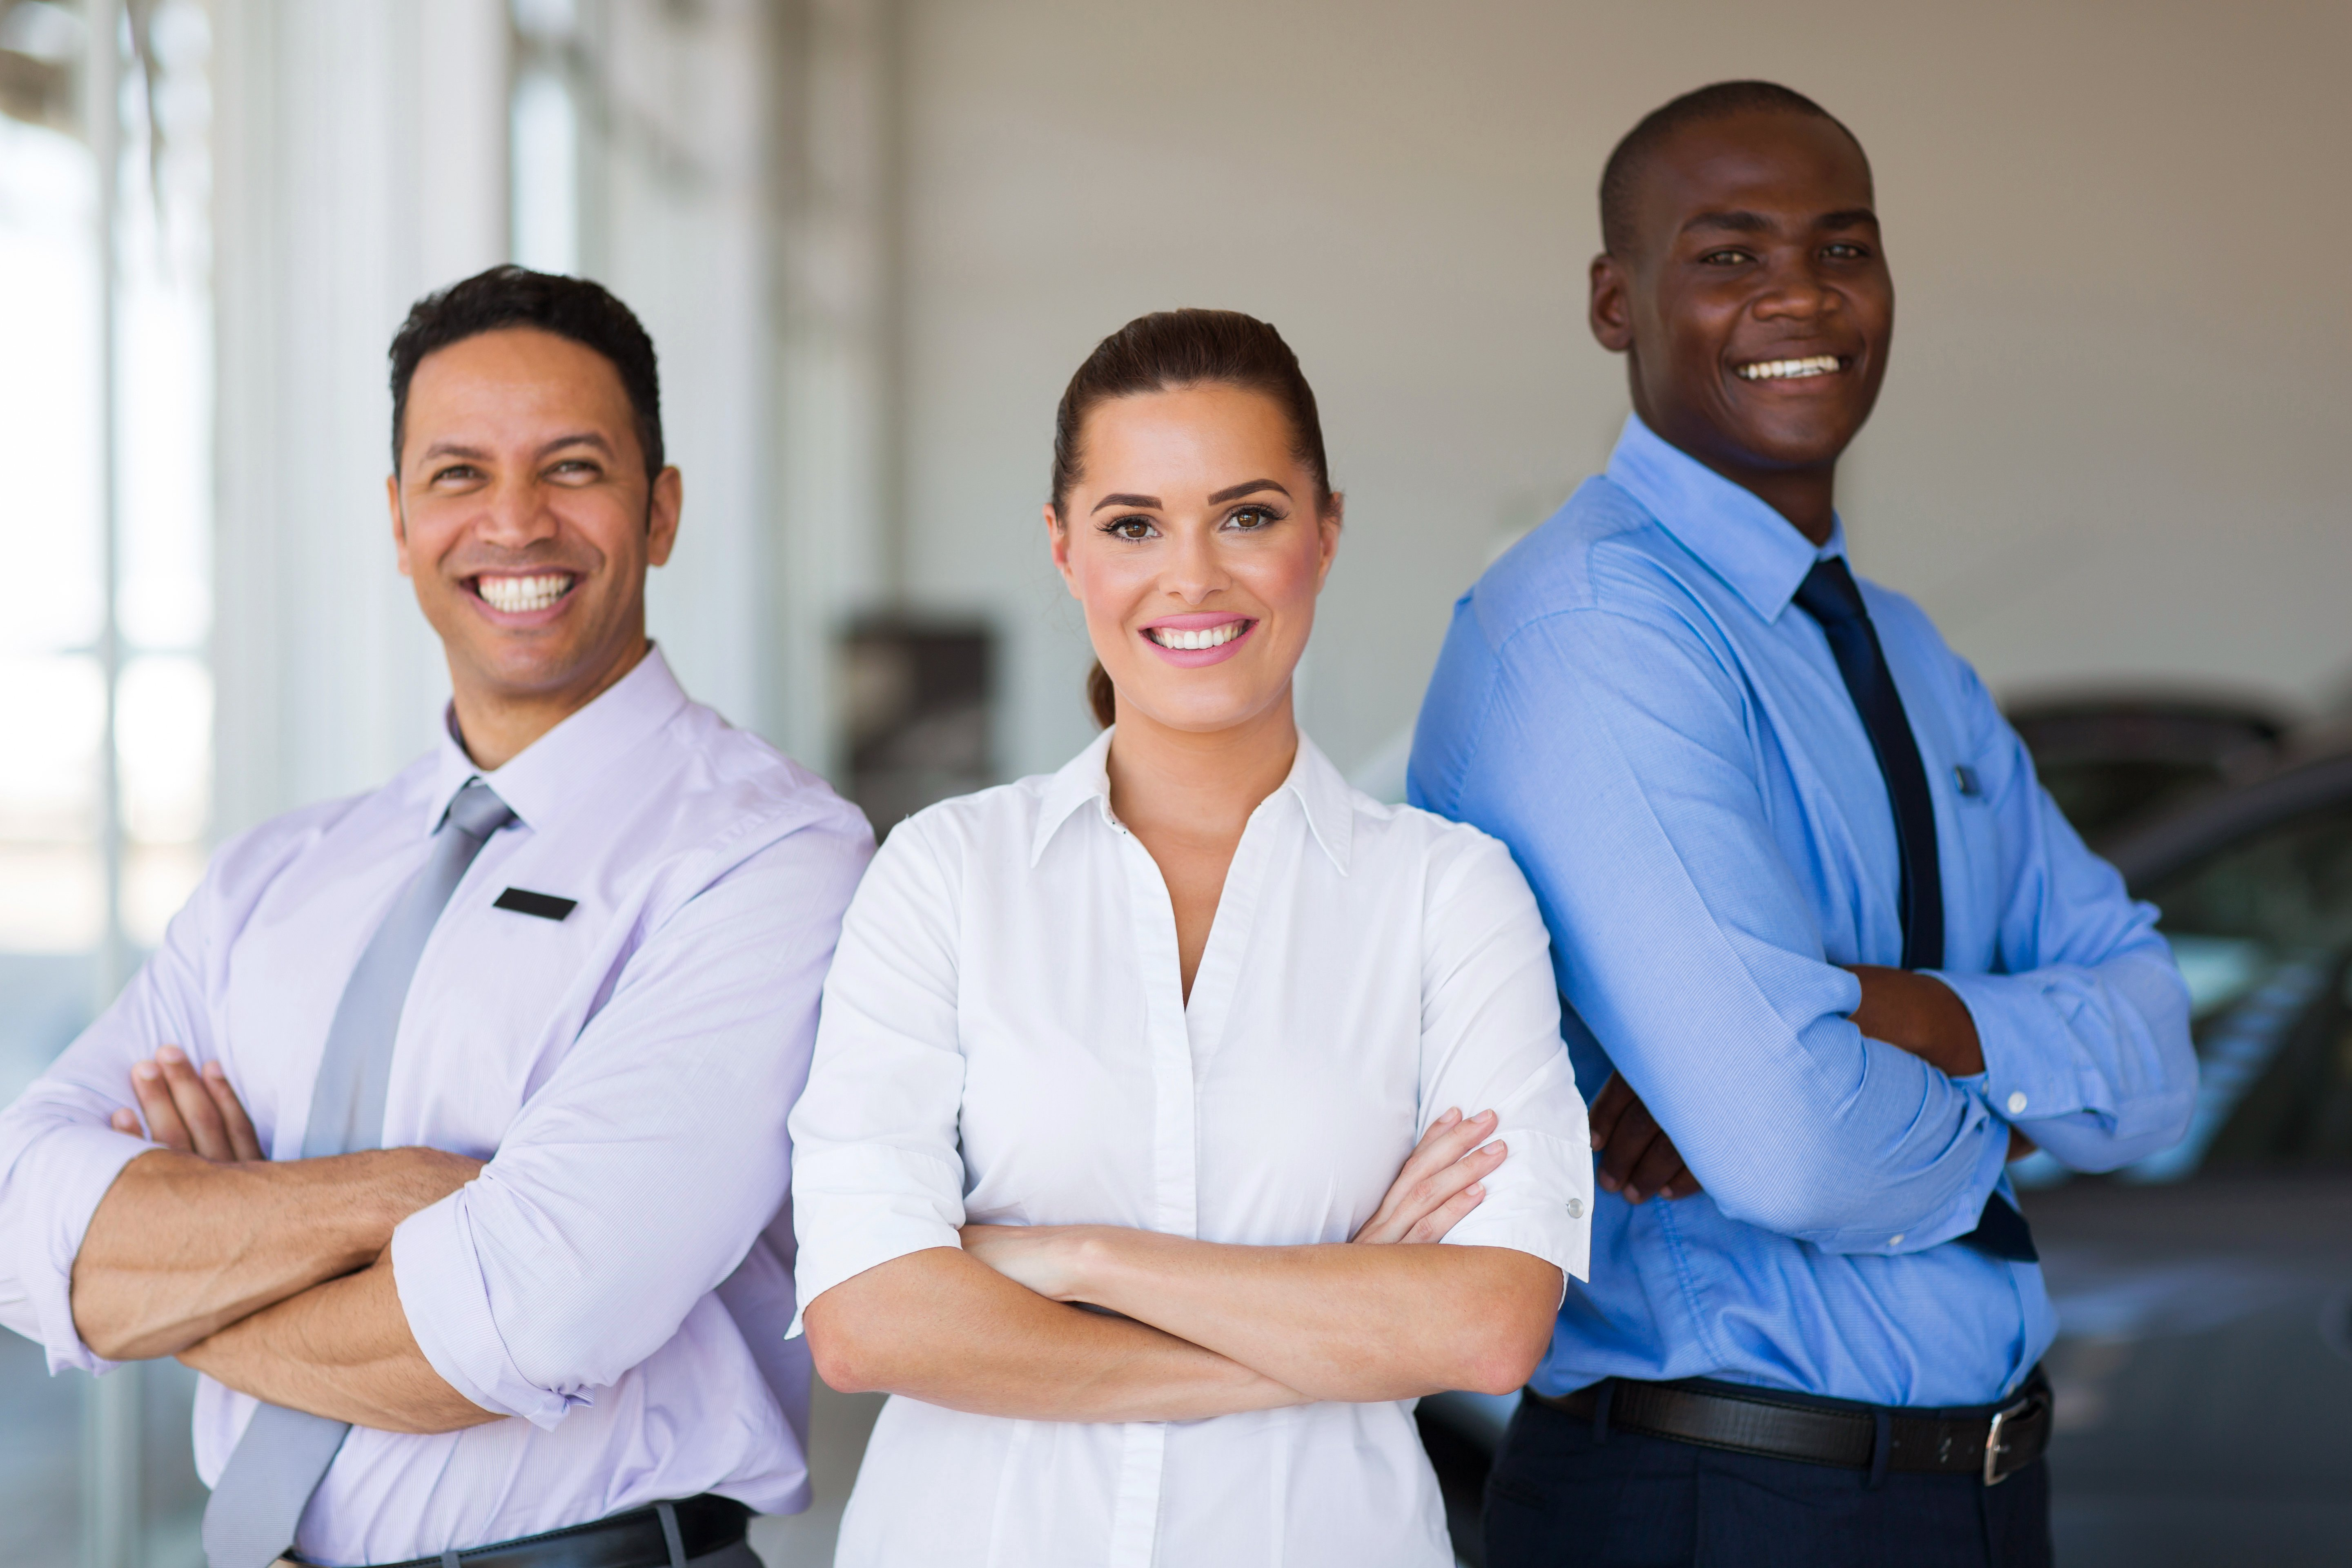 Skills for customer service will lead you to success